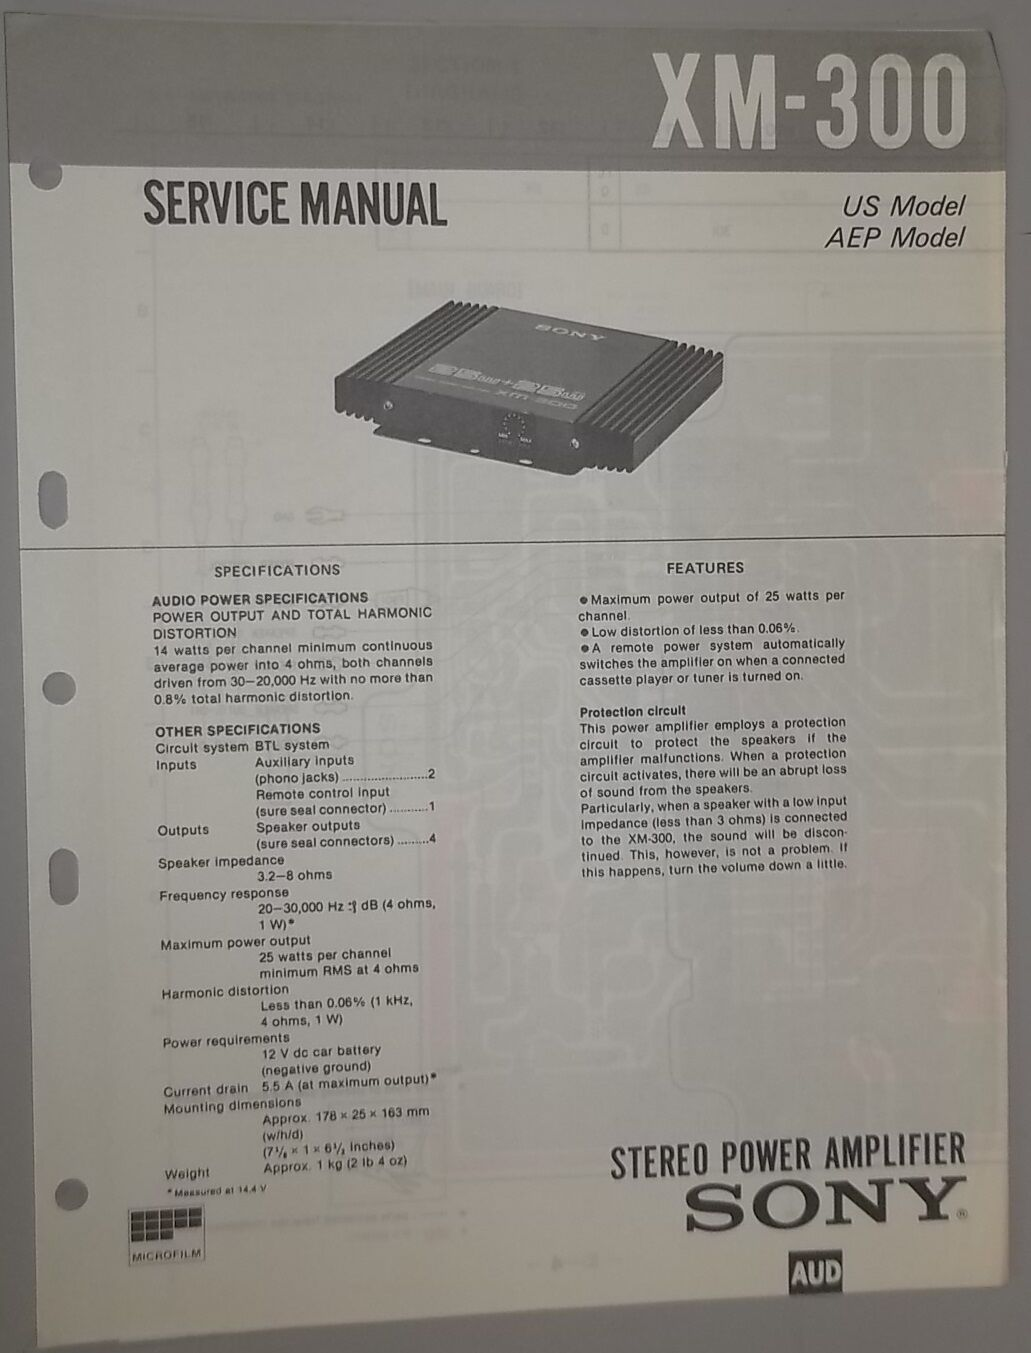 Sony Car Audio Manuals John Deere Snowblower Trs Parts Diagram Interior Design Array Stereo Power Amplifier Xm 300 Oem Service Manual 6 99 Rh Picclick